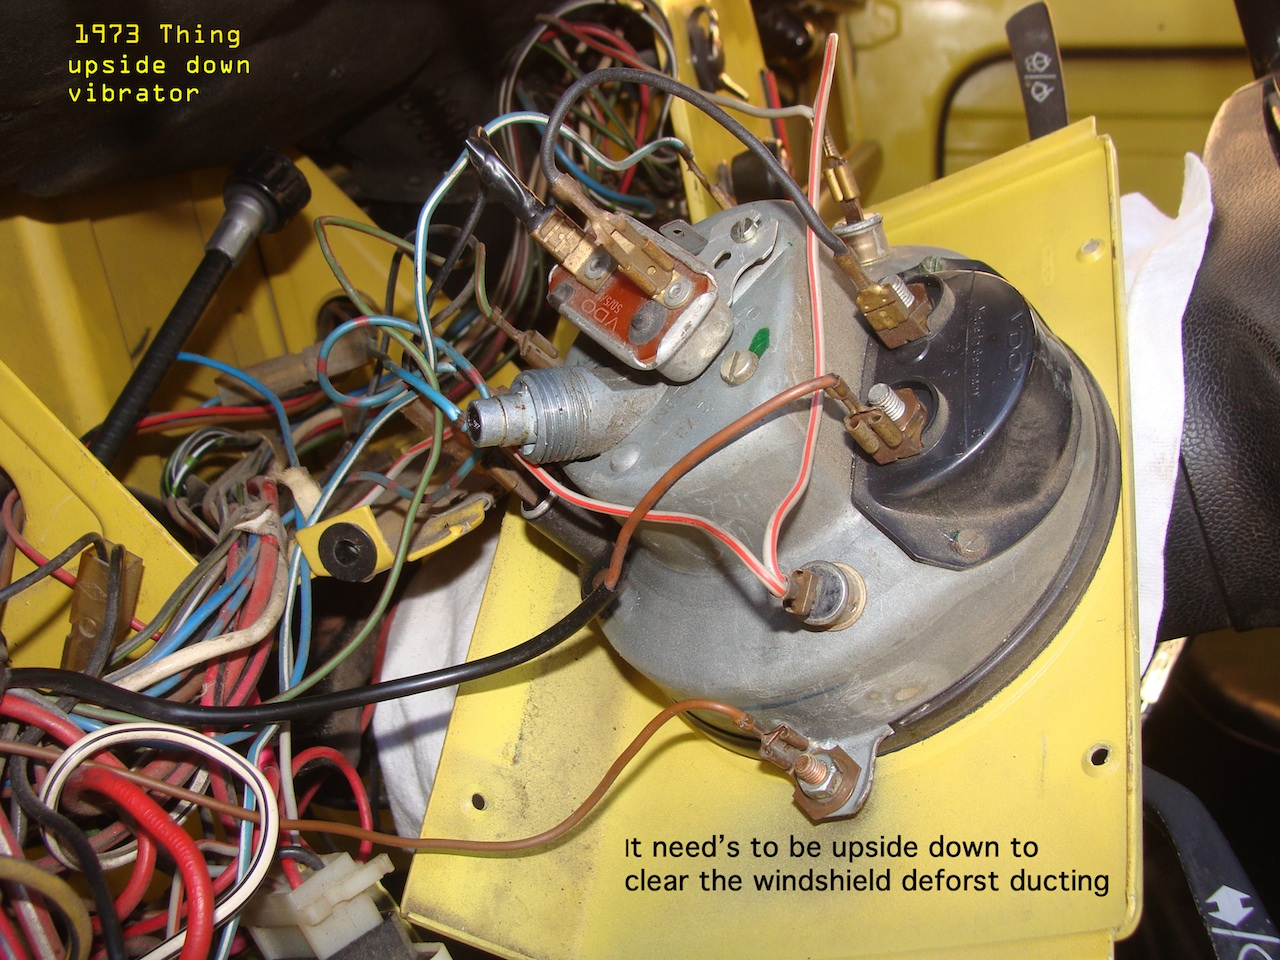 Vw Beetle Starter Motor Wiring Diagram : Thesamba thing type view topic broken fuel